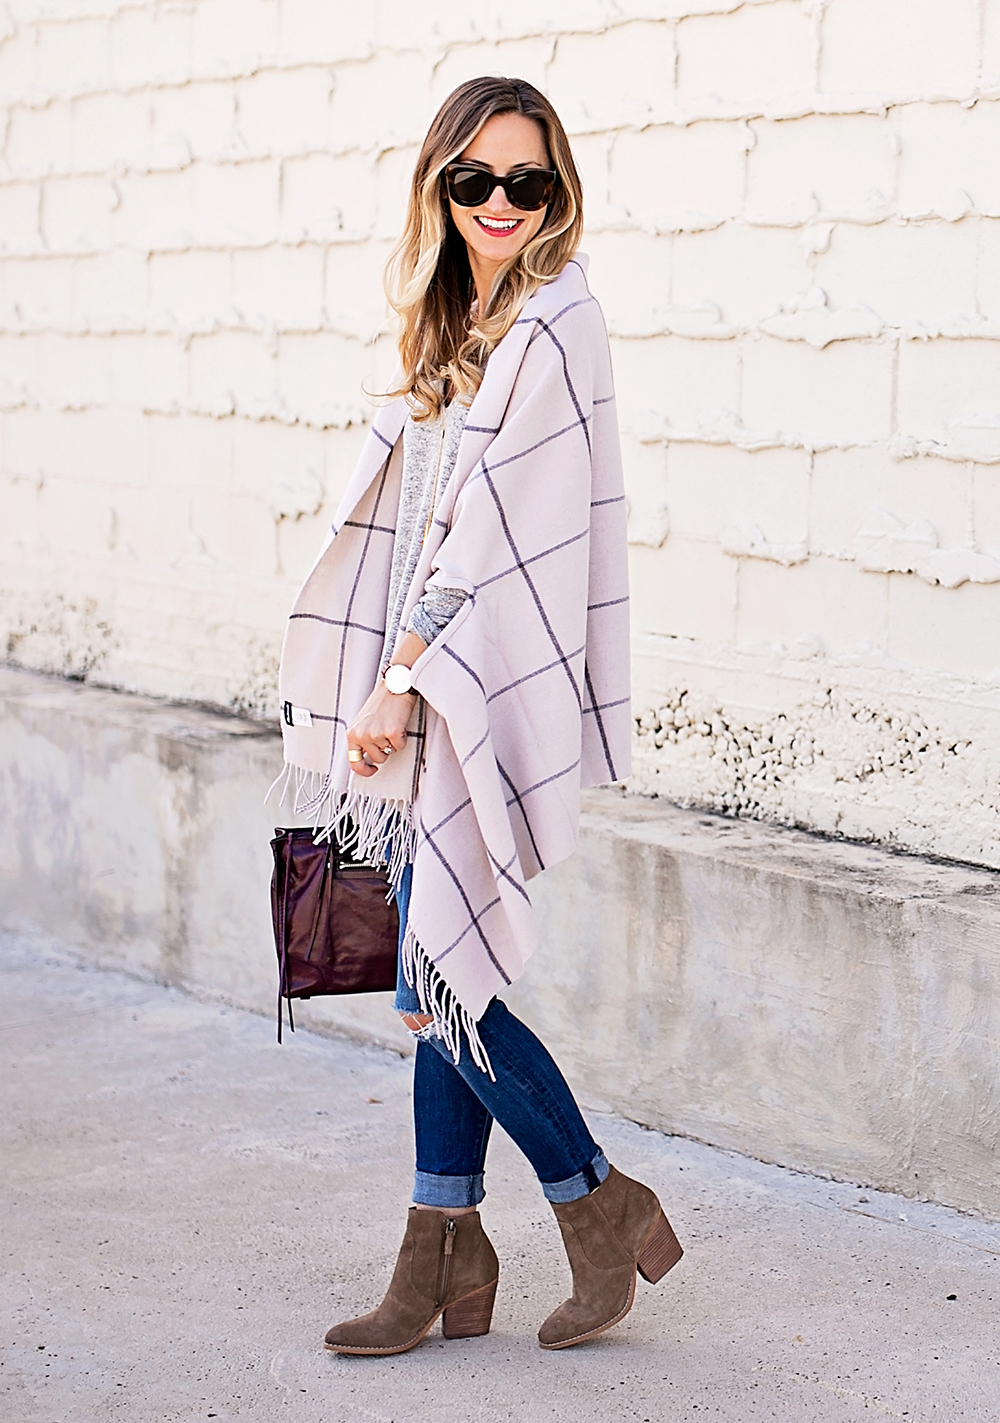 livvyland-blog-olivia-watson-nordstrom-fall-outfit-grey-sweater-booties-madewell-plaid-poncho-rebecca-minkoff-regan-satchel-burgundy-oxblood-13